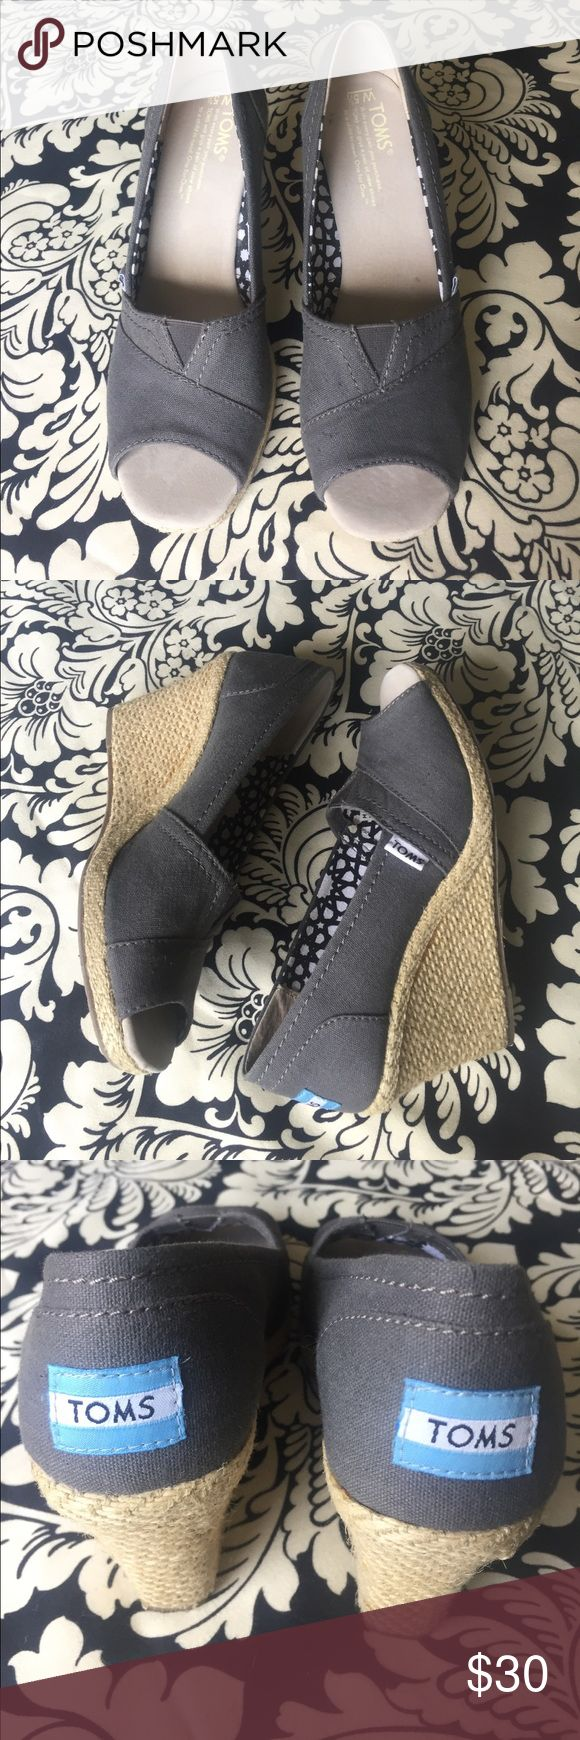 Gray TOMS Wedges Cute gray wedges size 5.5. There is some glue on the wedges as seen in last photo, otherwise  these are in excellent used condition. TOMS Shoes Wedges